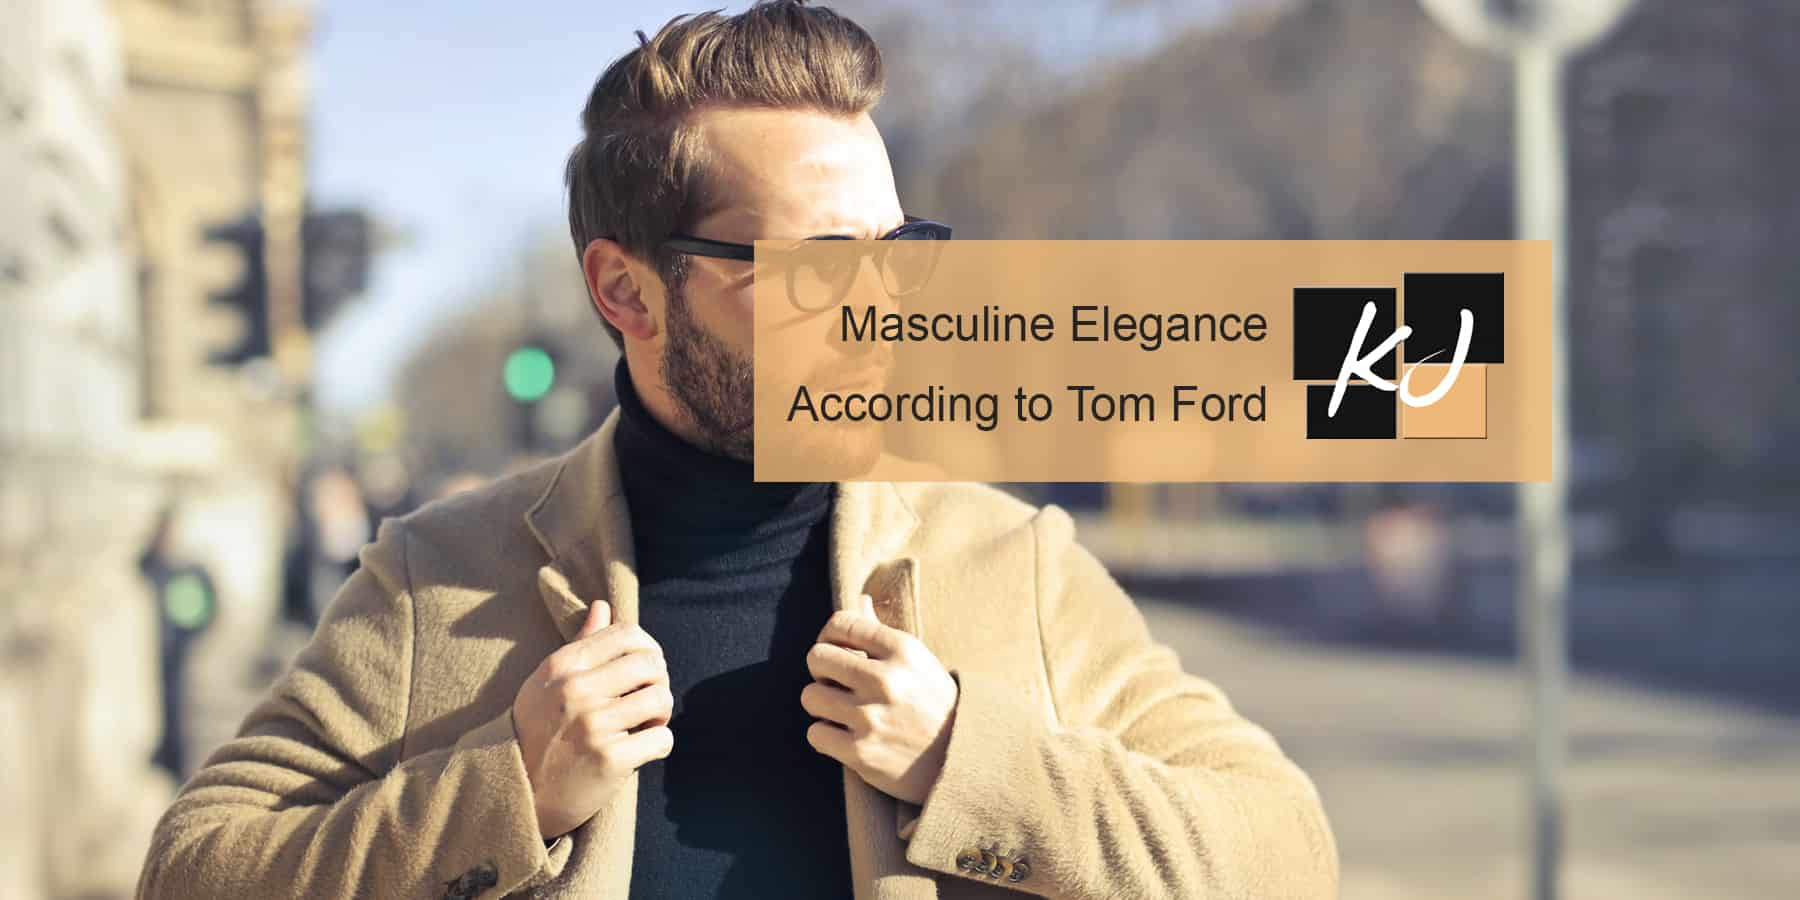 8 Keys to Masculine Elegance According to Tom Ford